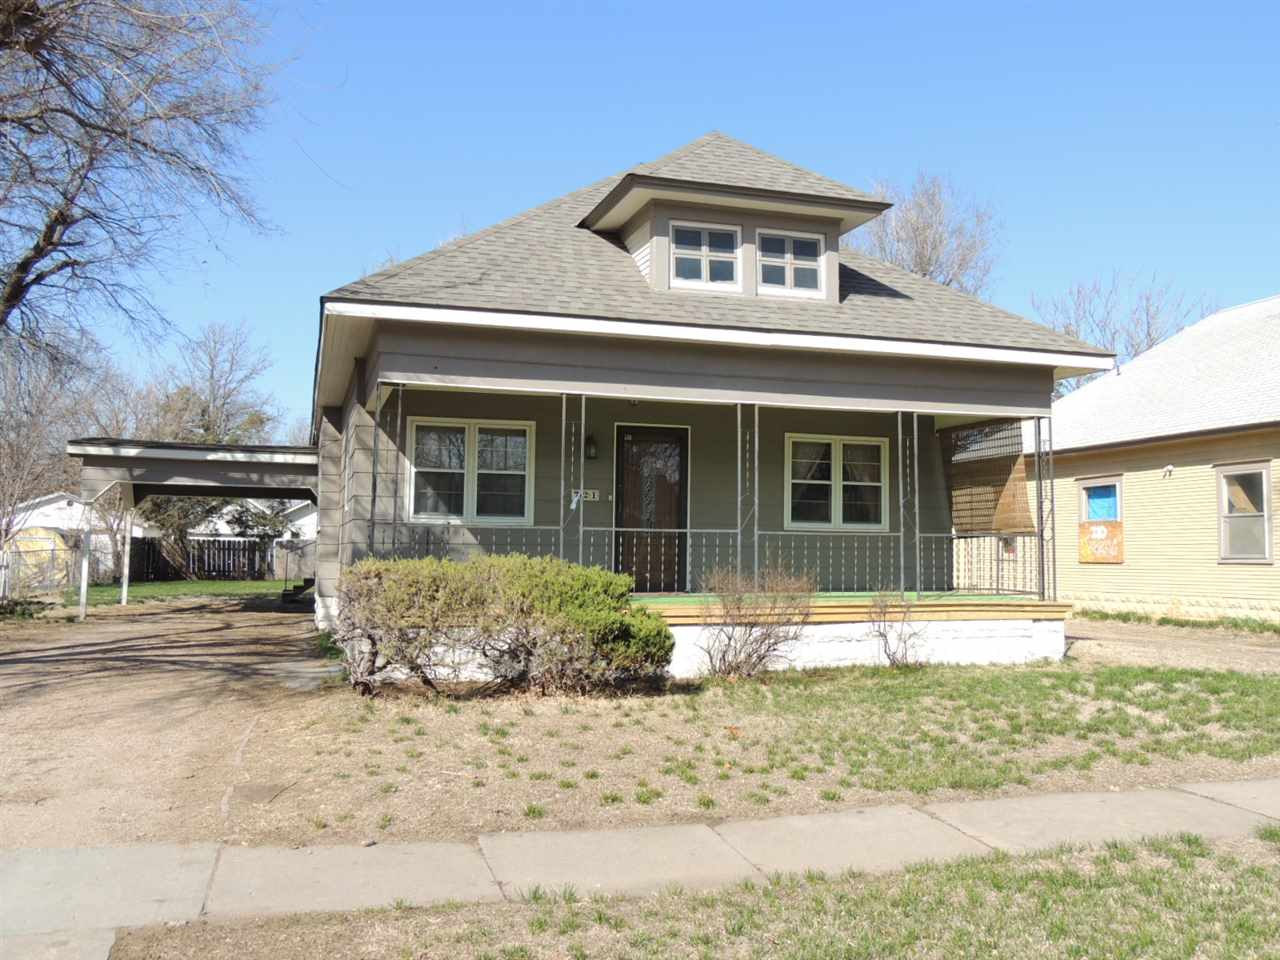 721 S Laura Ave., Wichita, KS 67211